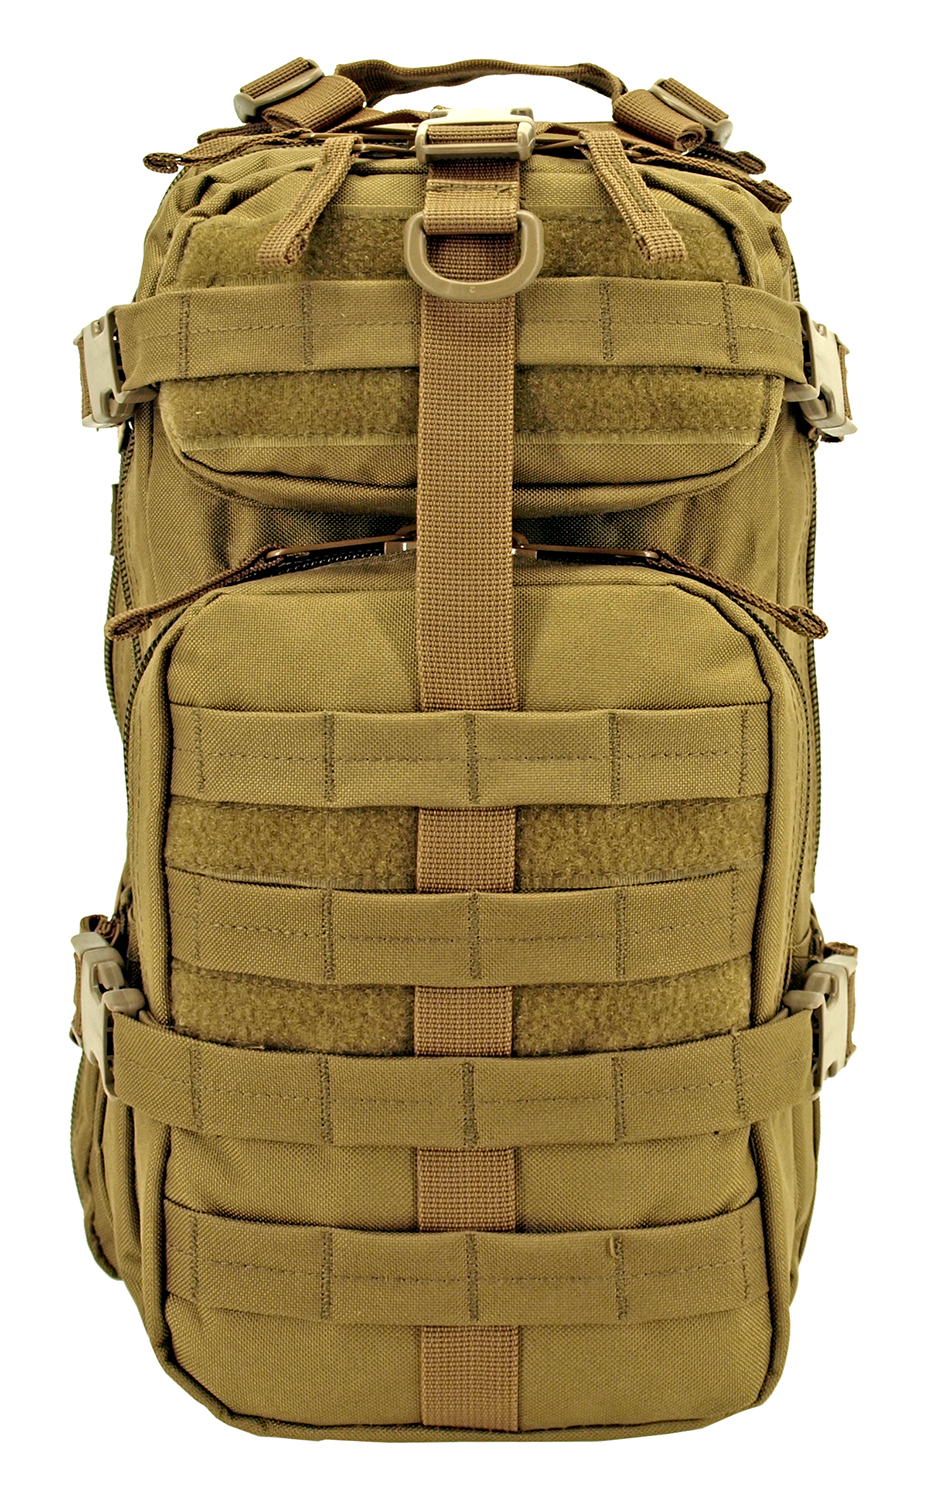 Tactical Assault Backpack - Desert Tan